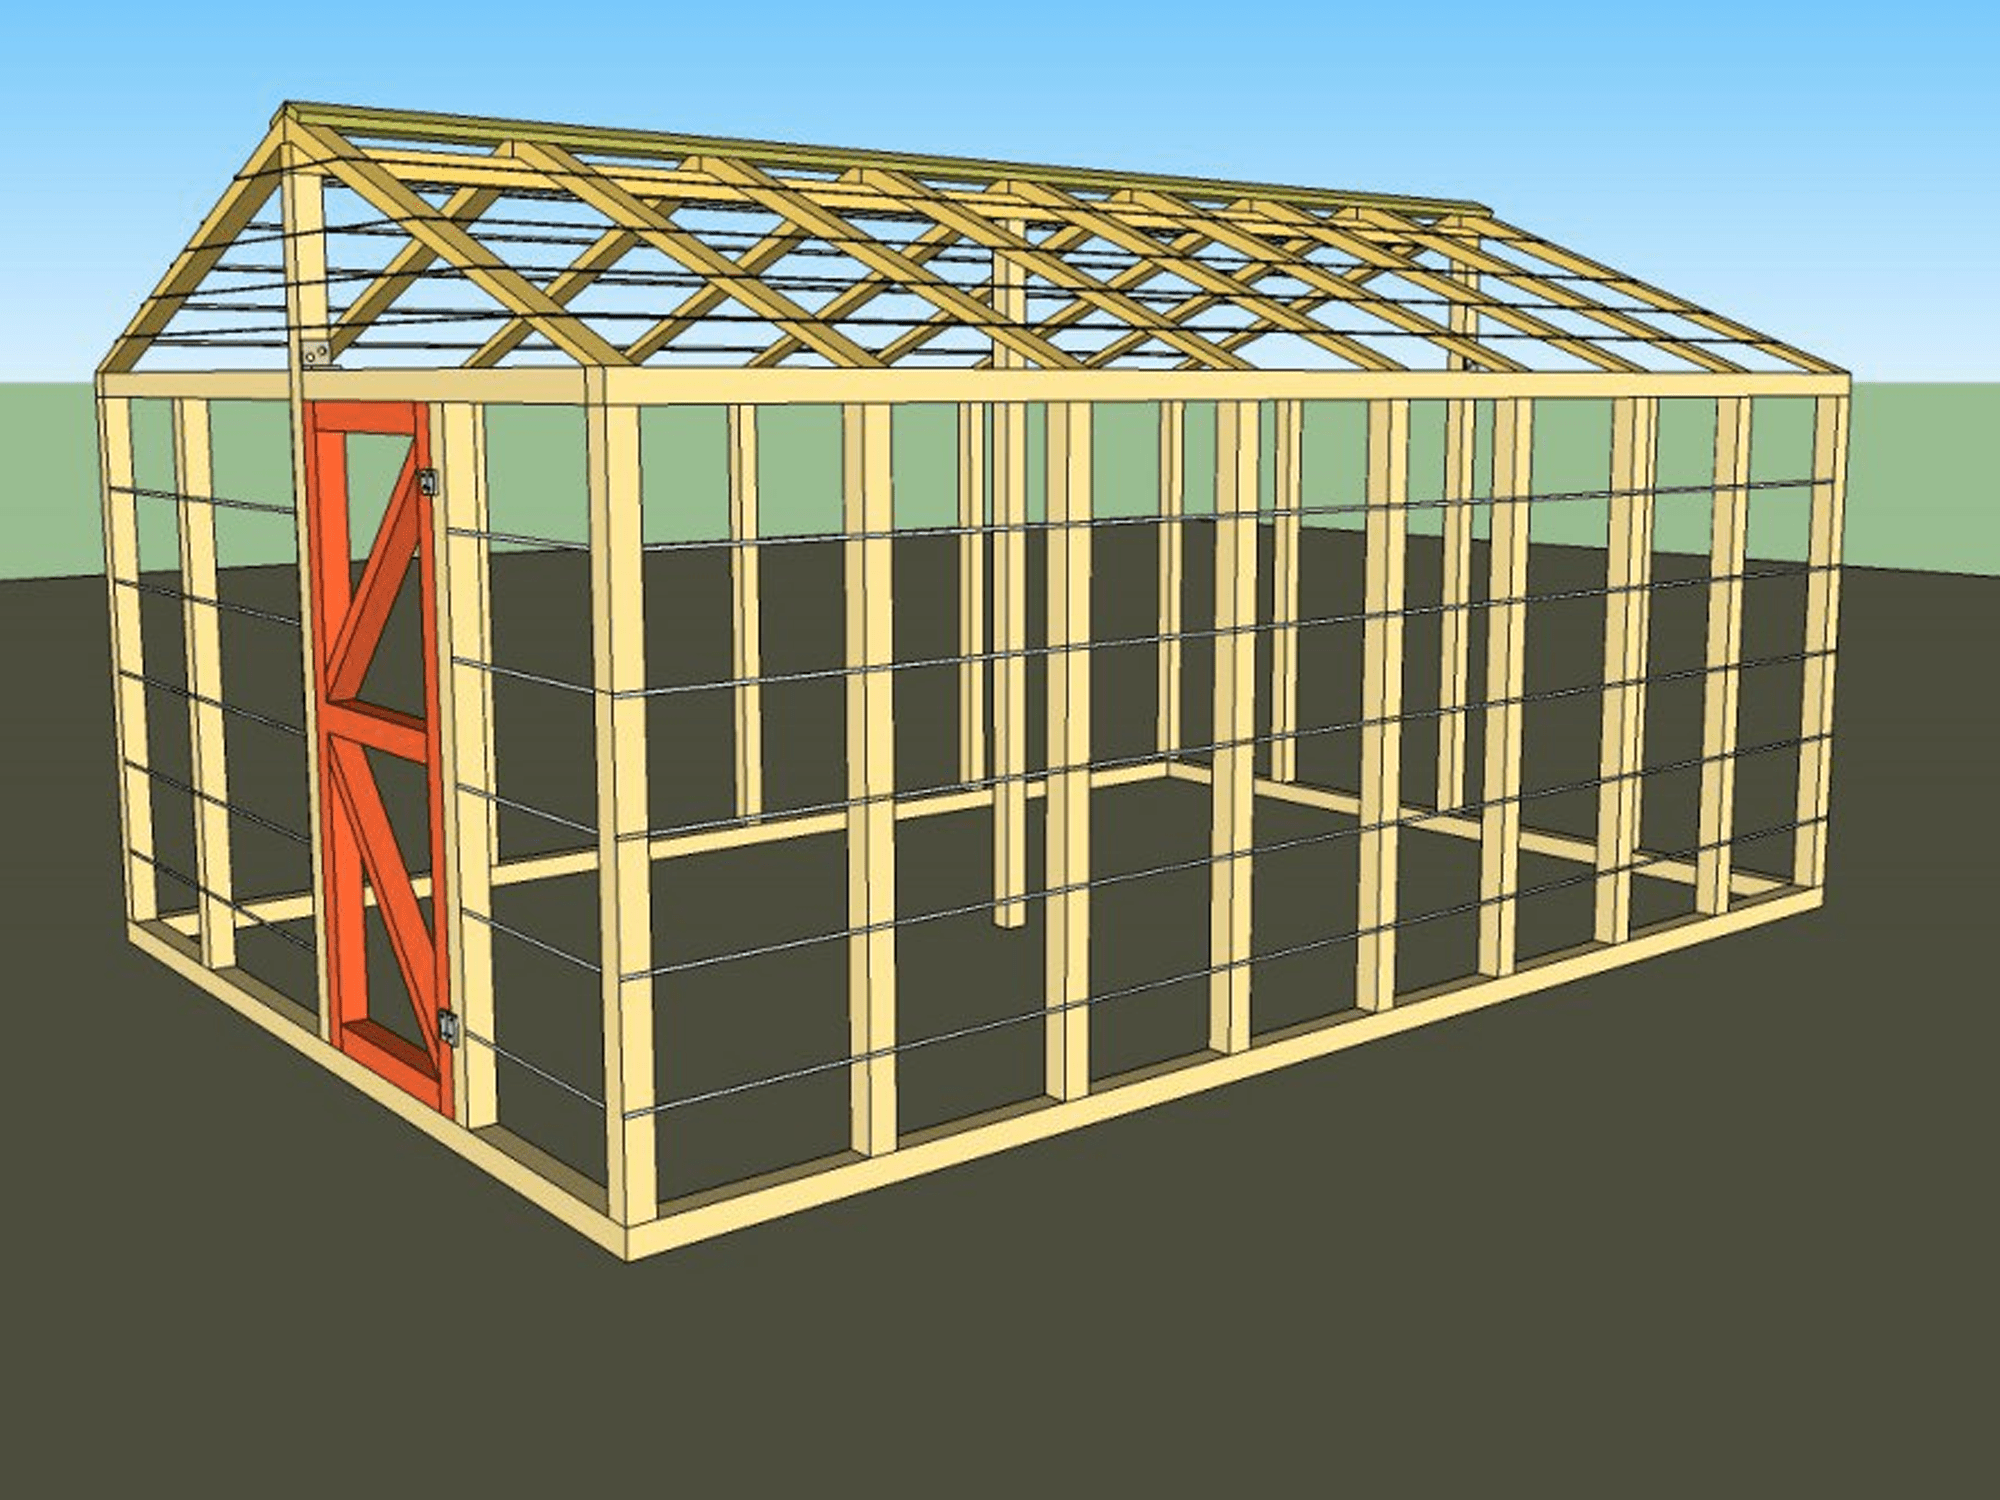 Illustration of a small greenhouse